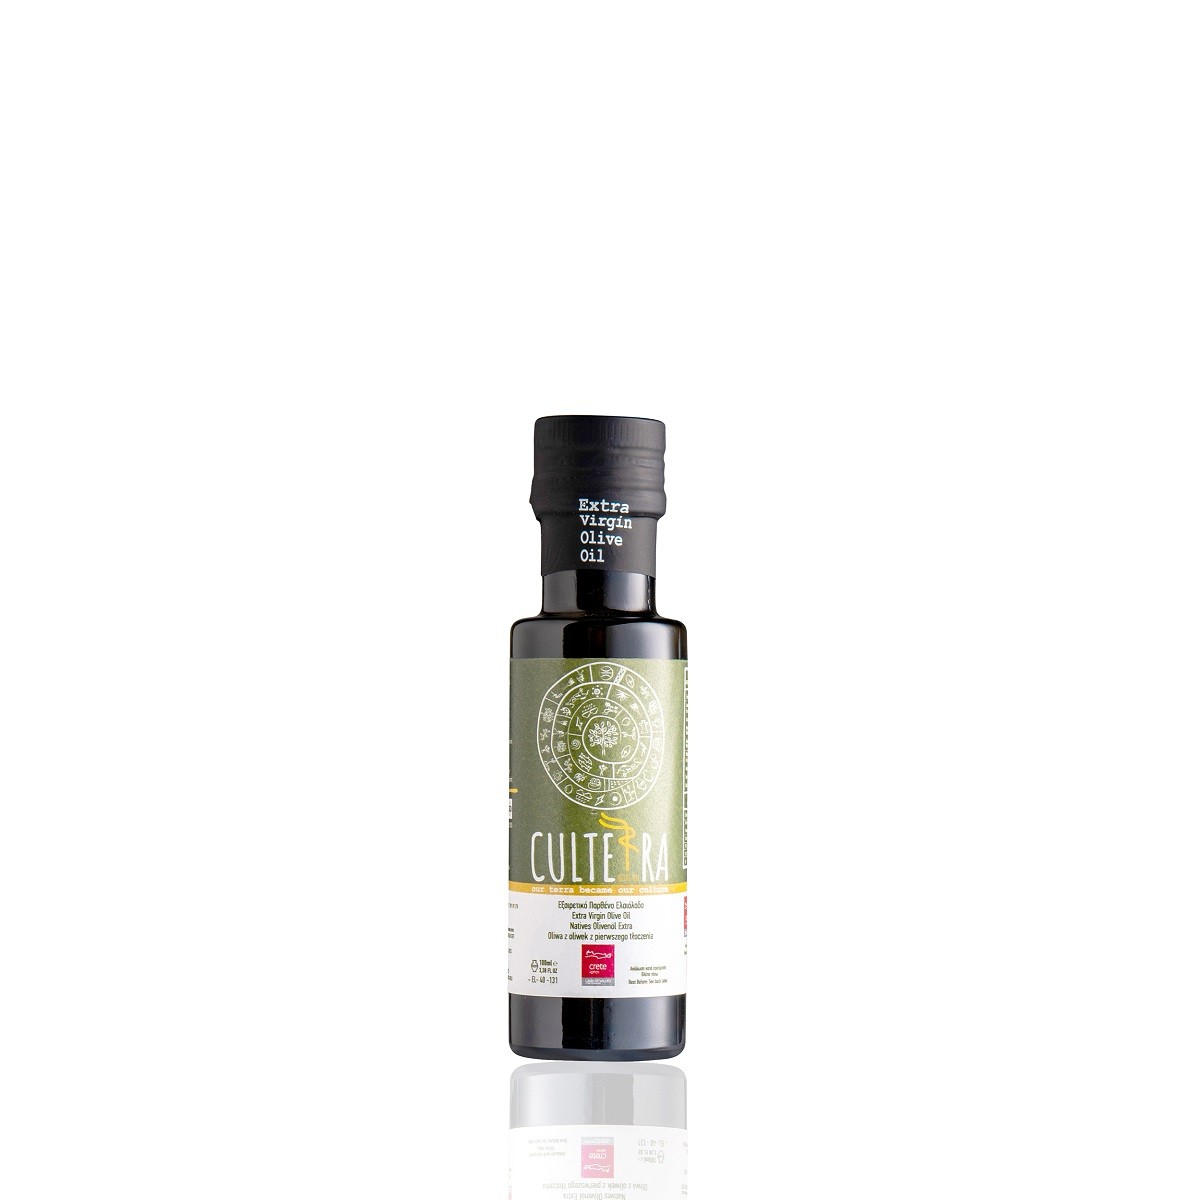 CULTERRA EVOO 100ml Glass Bottle